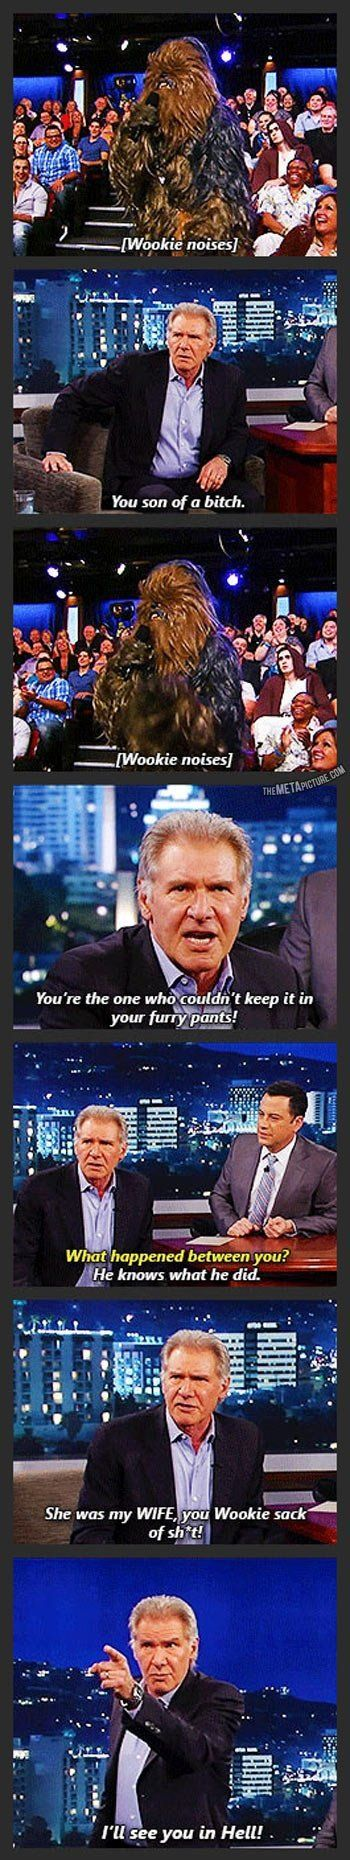 Chewbacca vs. Harrison Ford…AMAZING!!! Haha I died! @Jenna Nelson Nelson Nelson Yeager